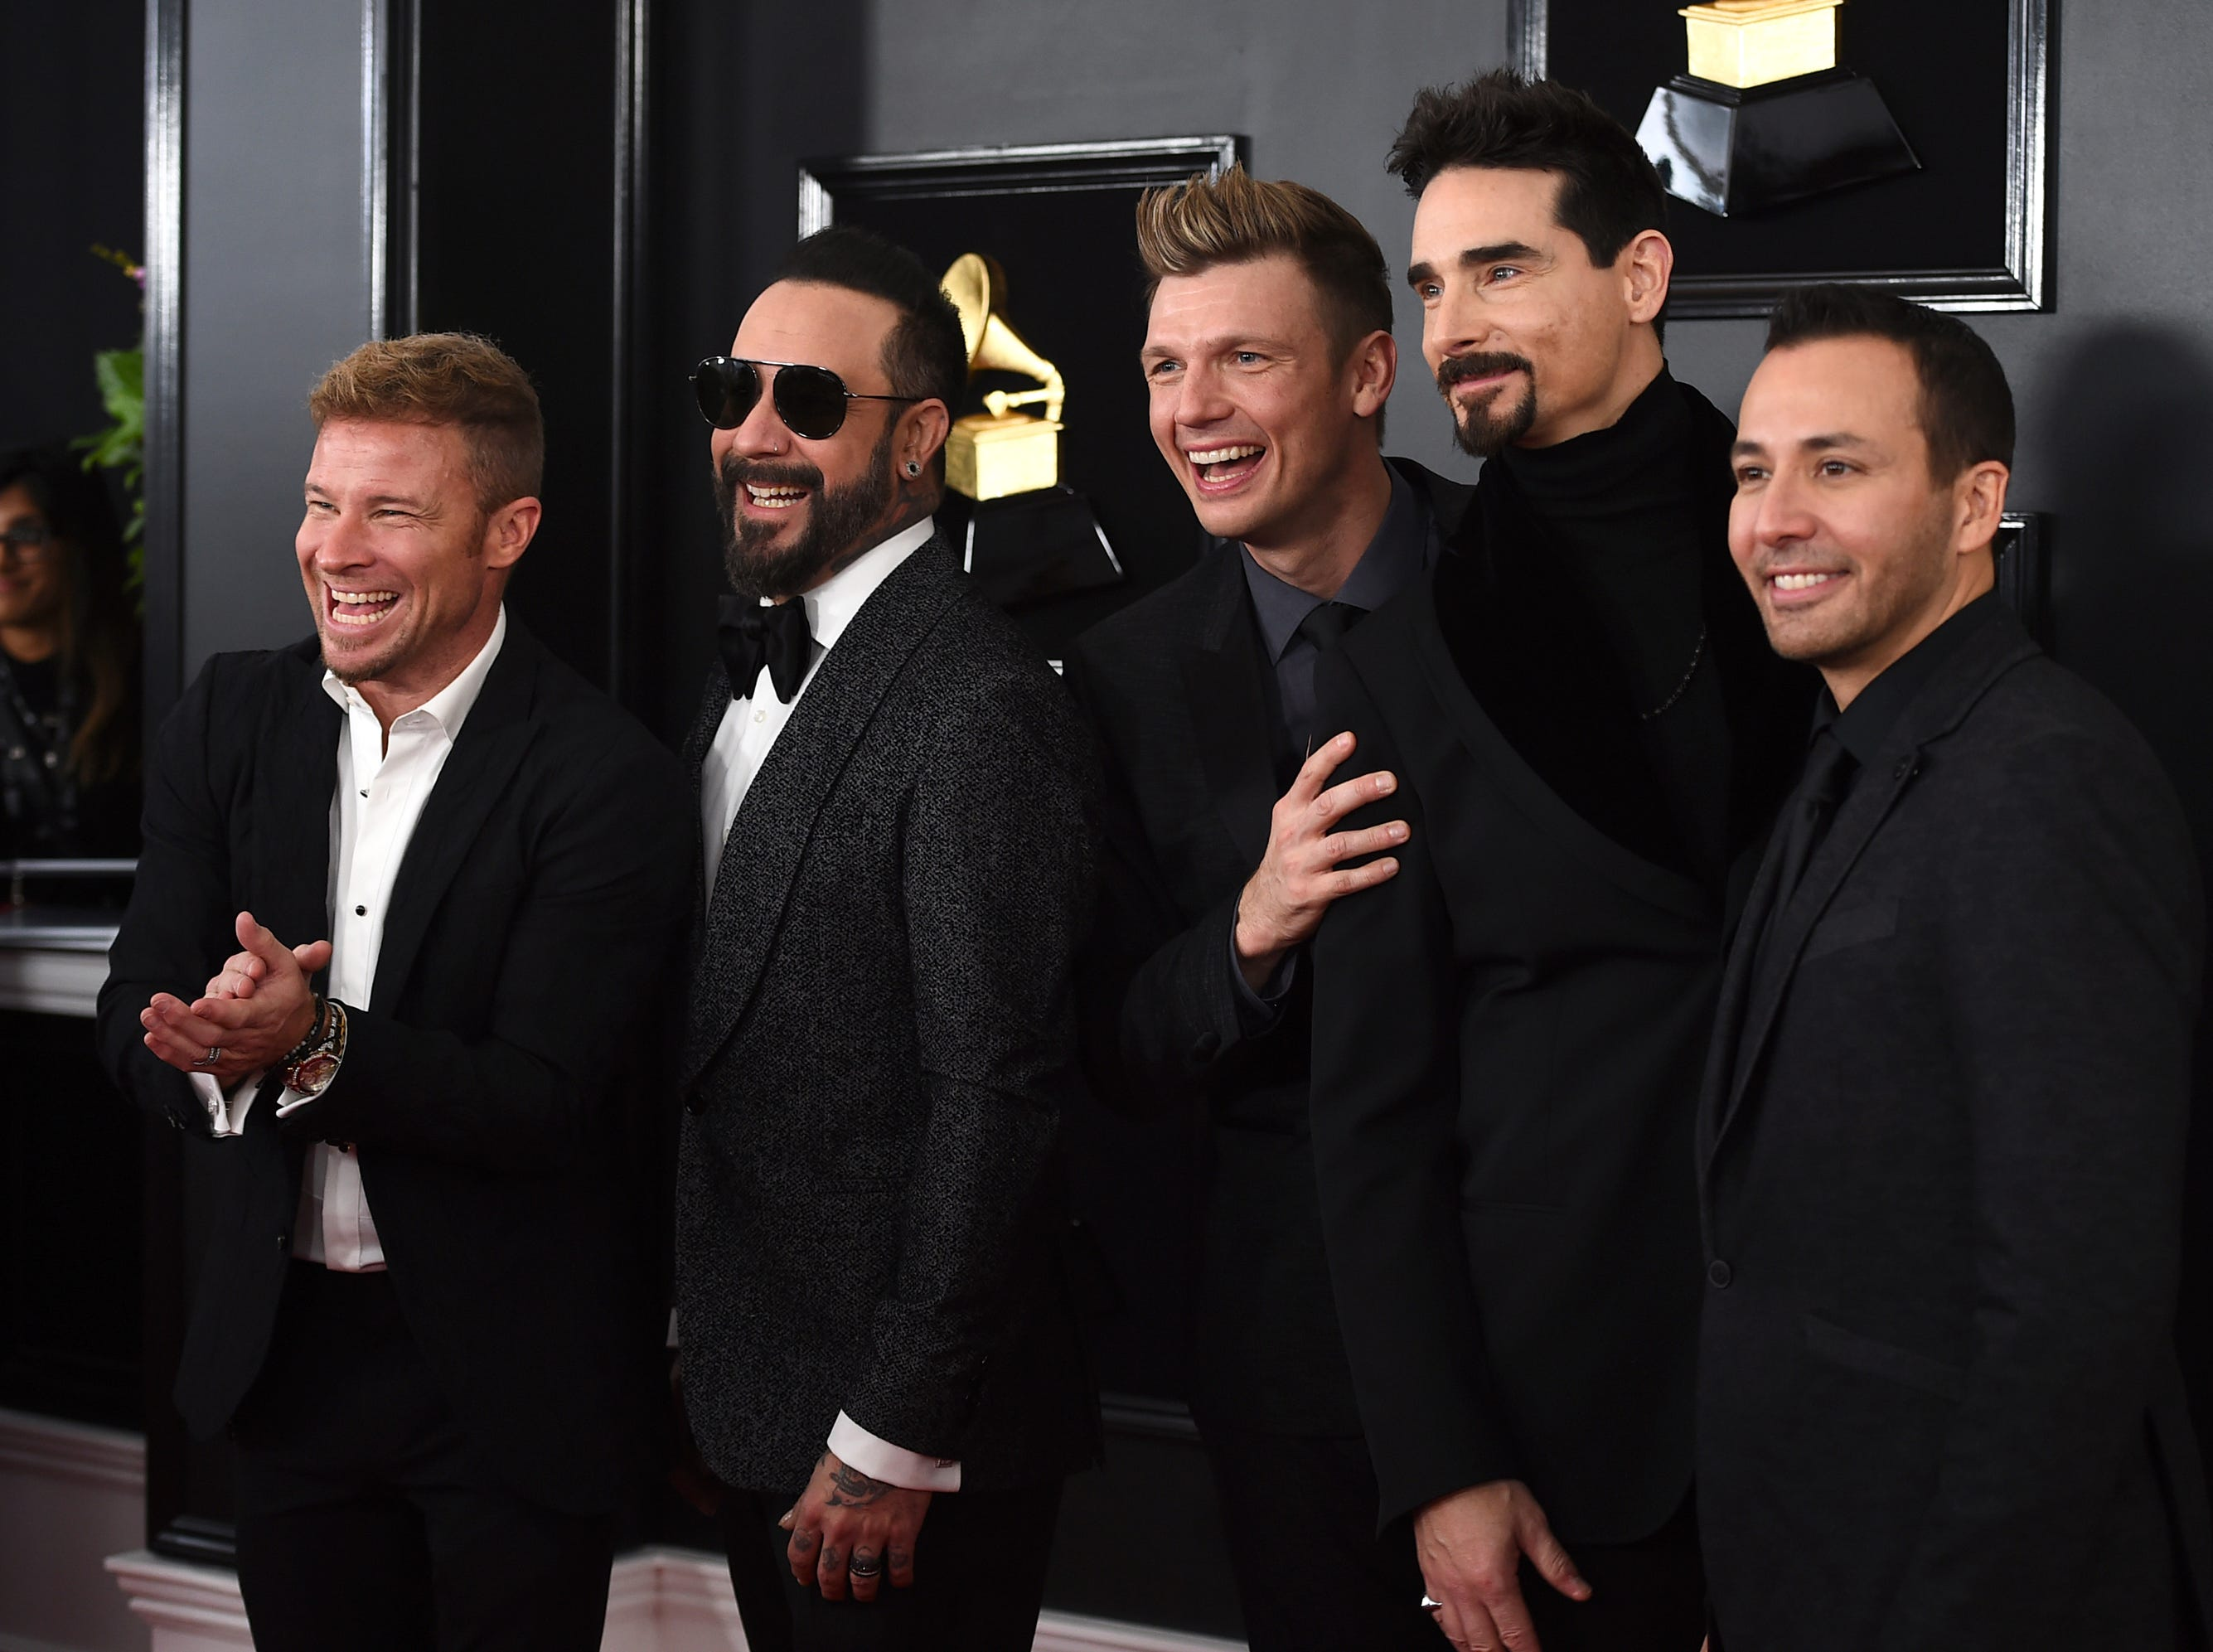 Brian Littrell, from left, AJ McLean, Nick Carter, Kevin Richardson, and Howie Dorough of The Backstreet Boys arrive at the 61st annual Grammy Awards.